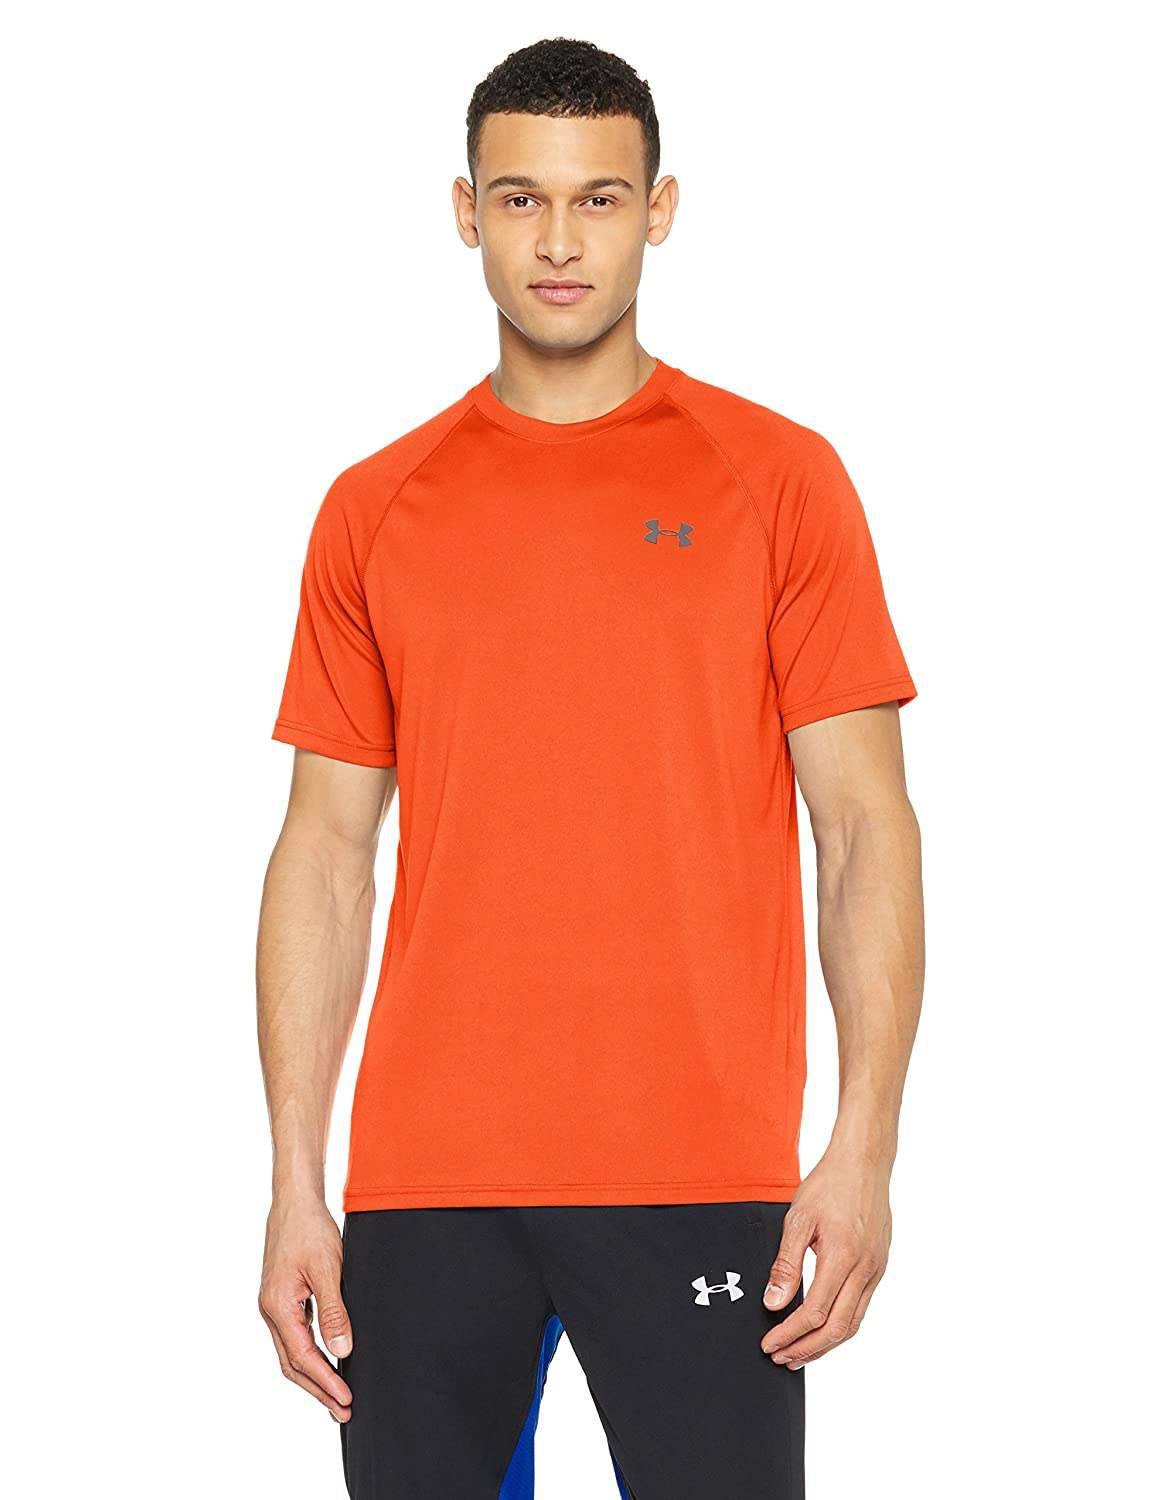 [アンダーアーマー] UA Tech SS Tee メンズ 1228539 B071F3X3Q4 Large|Magma Orange/Rhino Gray Magma Orange/Rhino Gray Large